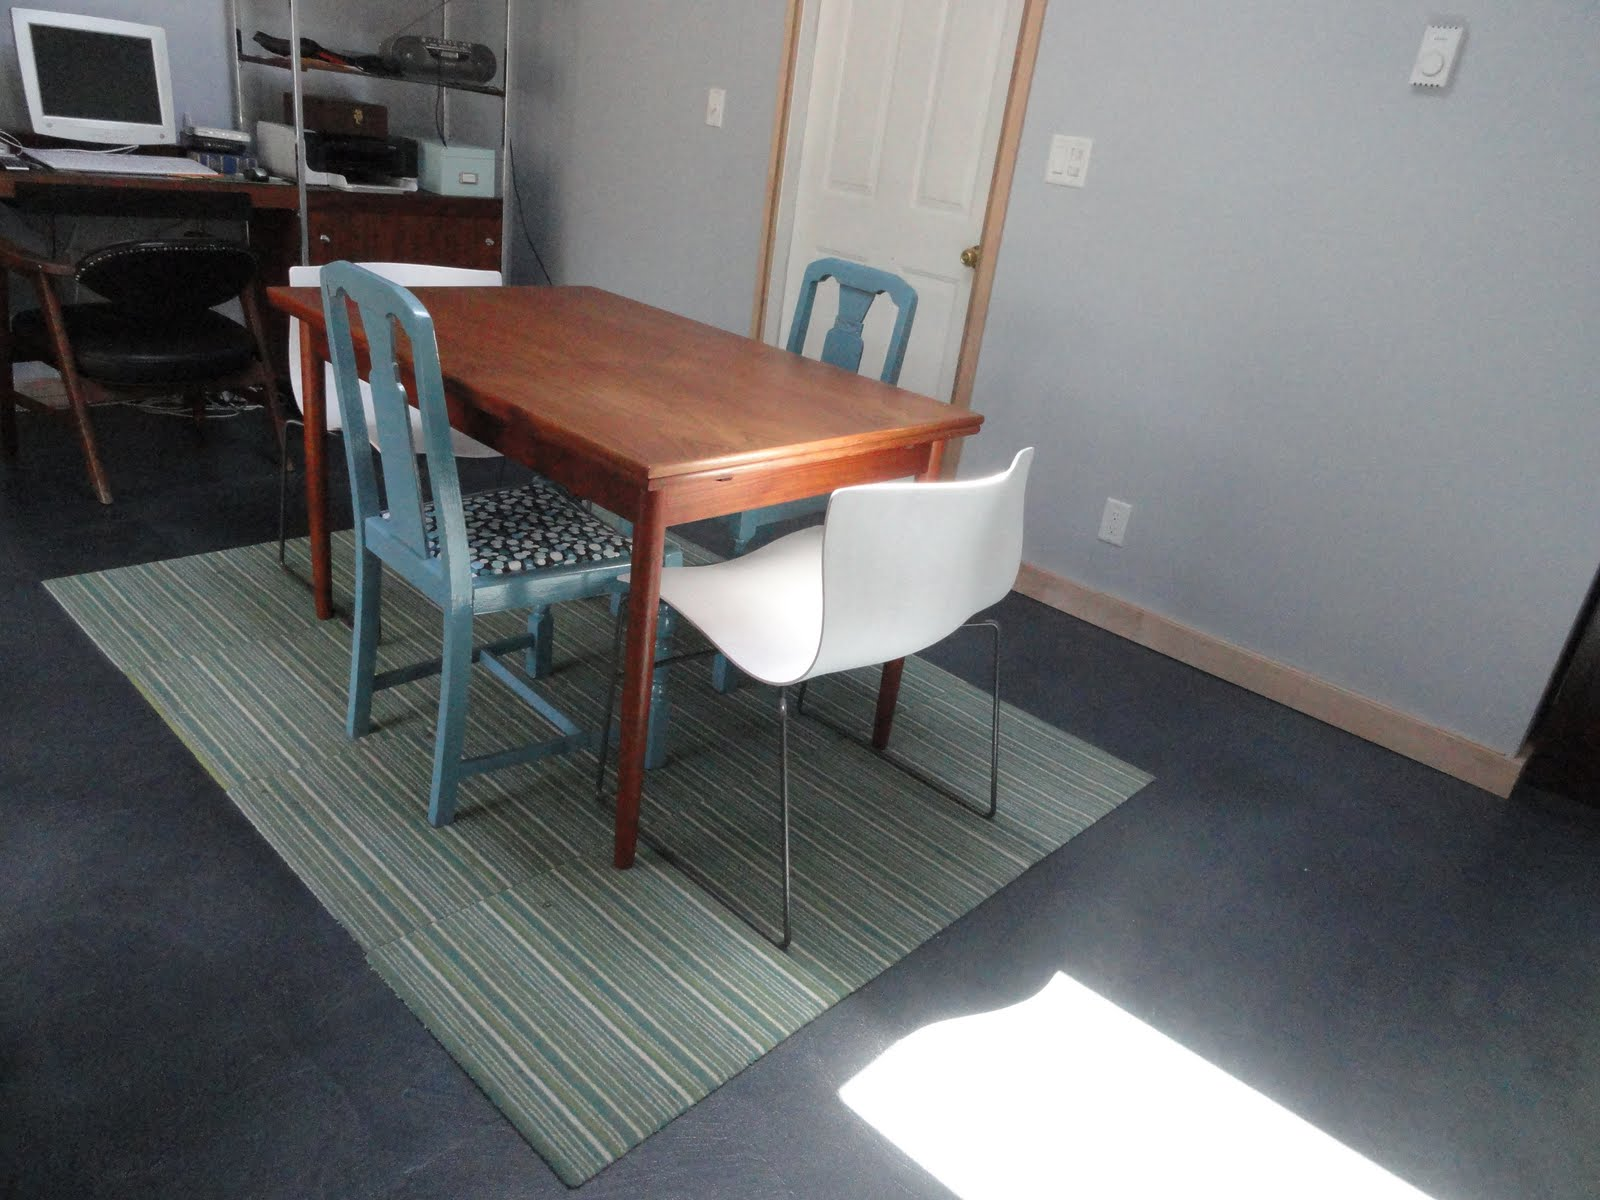 Knoll Handkerchief Stacking Chair. I Hope Youu0027re All Enjoying Some Great  Summer Days. Weu0027re Enjoying The Benefits Of Summer In The Willamette  Valley, ...